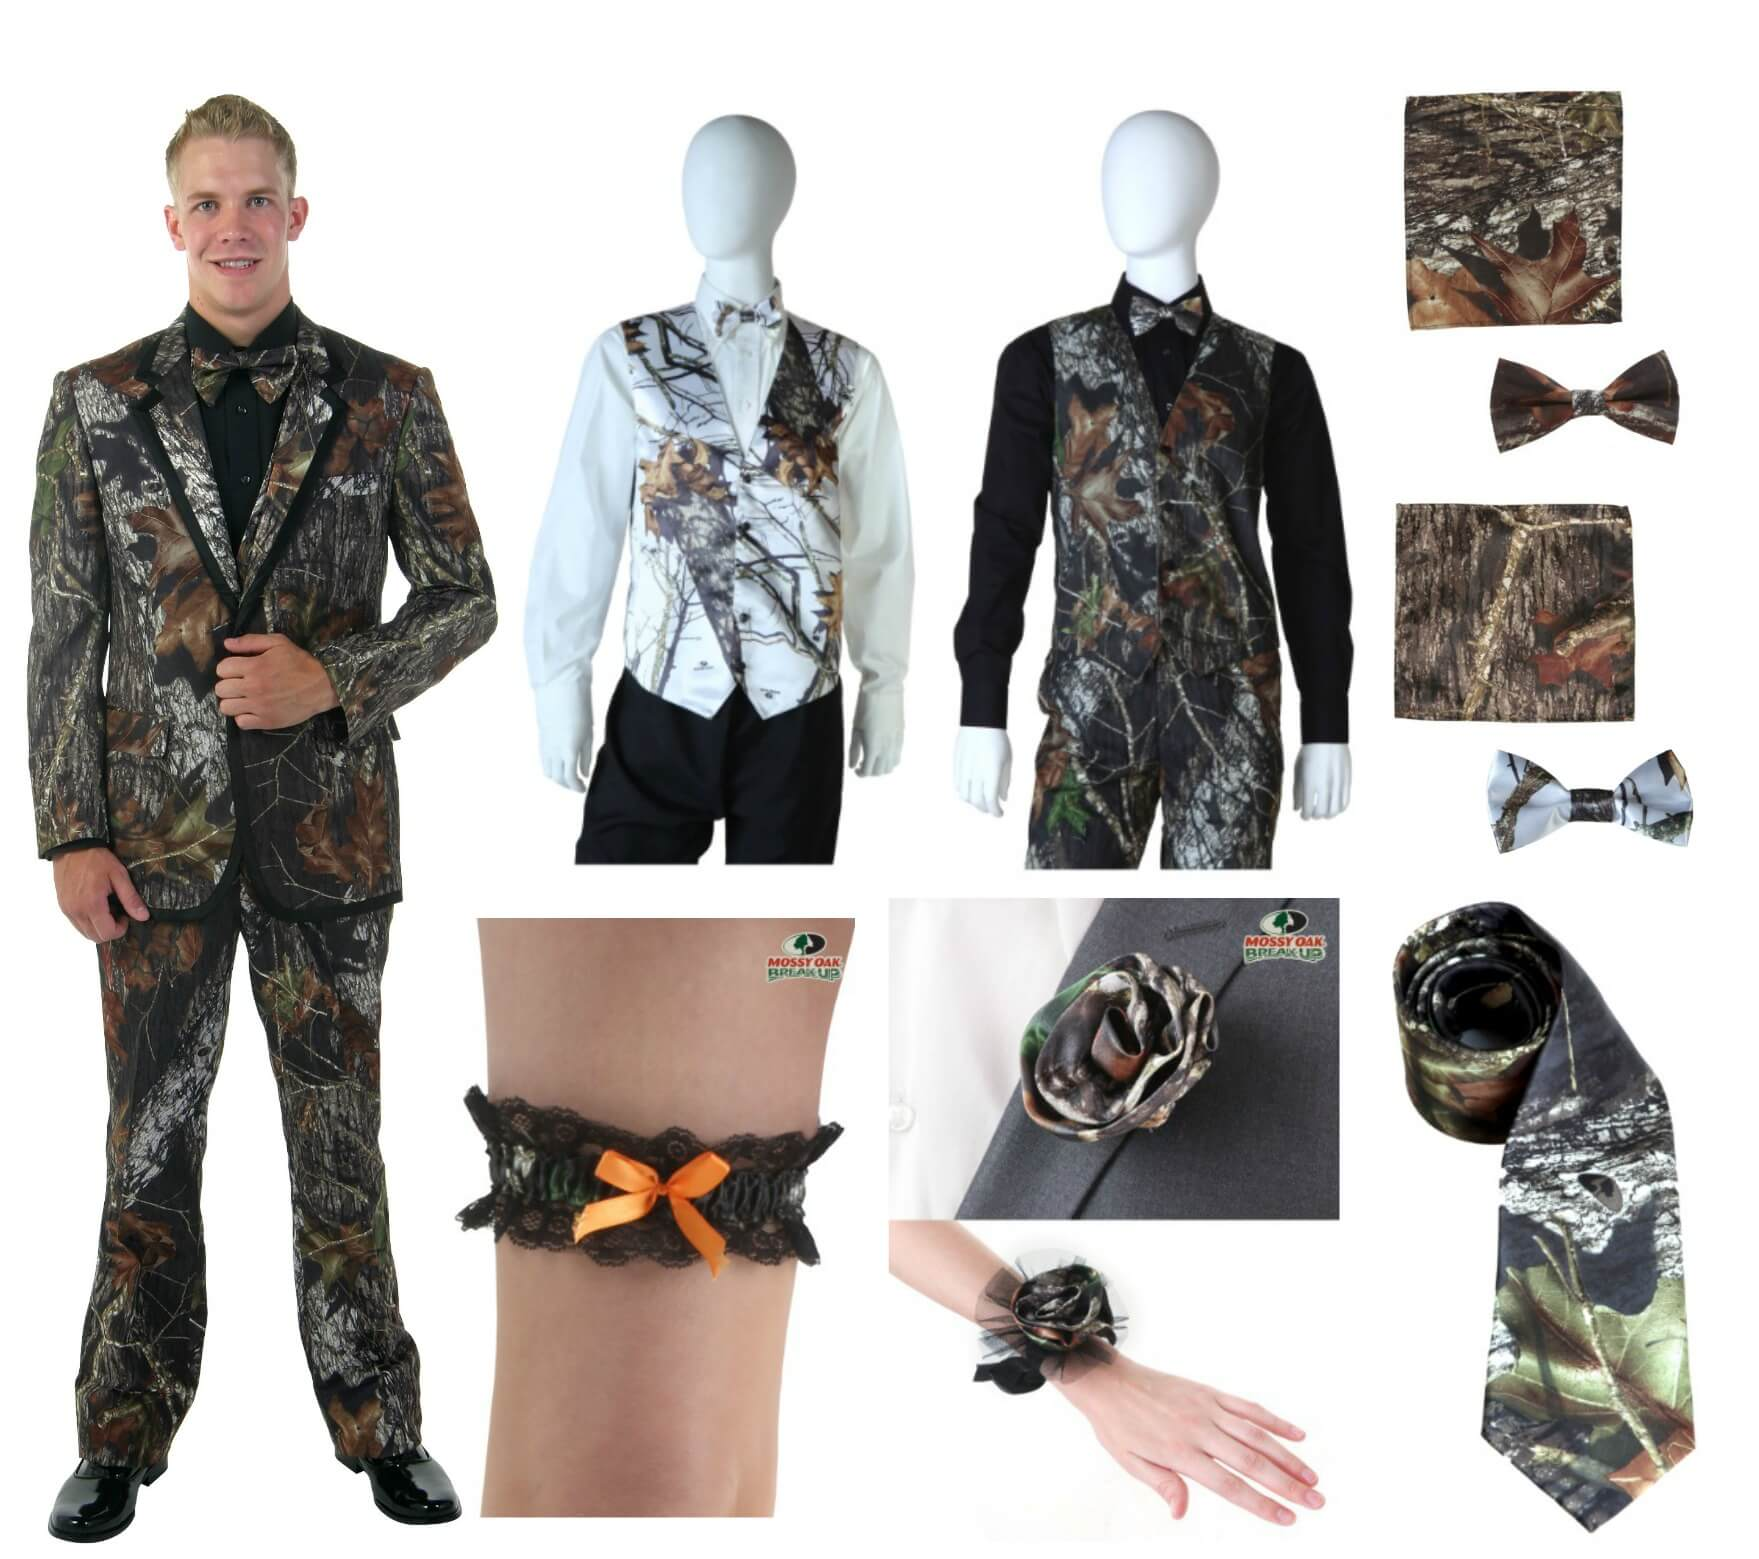 Prom Suits and Tuxedos for Everyone! - Halloween Costumes Blog